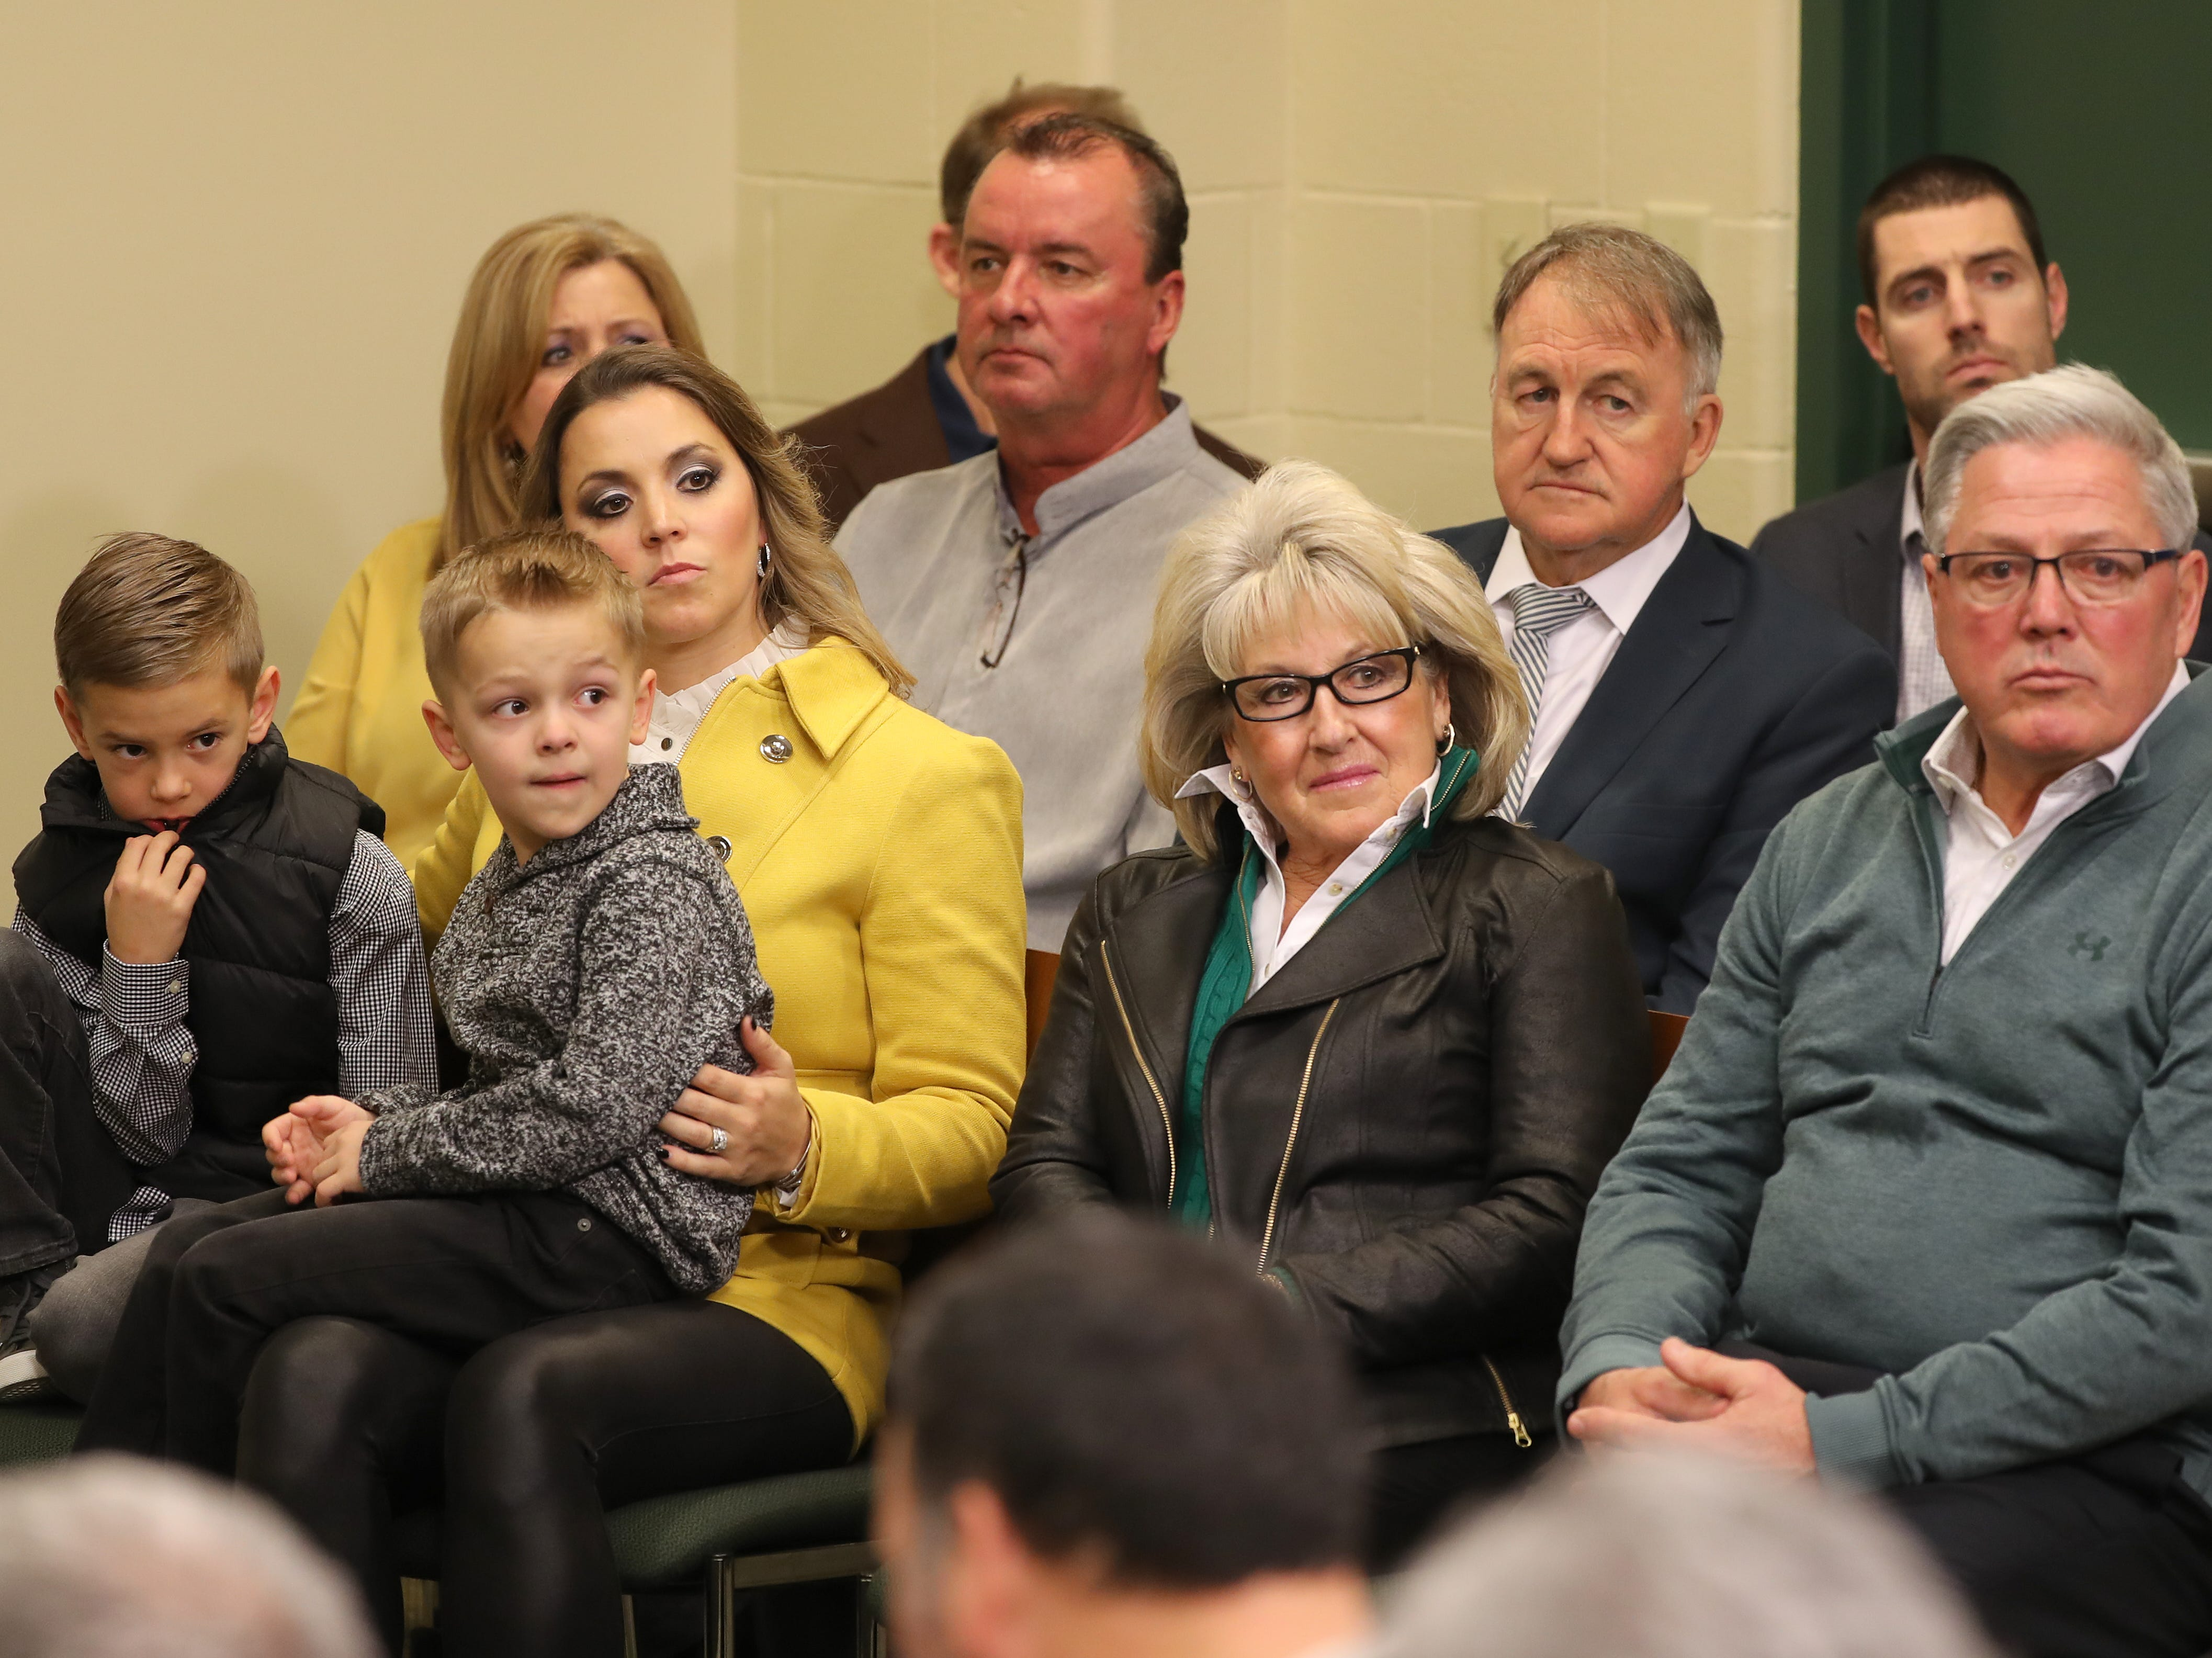 The family of new Green Bay Packers head coach Matt LaFleur looks on during media questioning as LaFleur is introduced during a press conference in the Lambeau Field media auditorium Wednesday, January 9, 2019 in Green Bay, Wis.